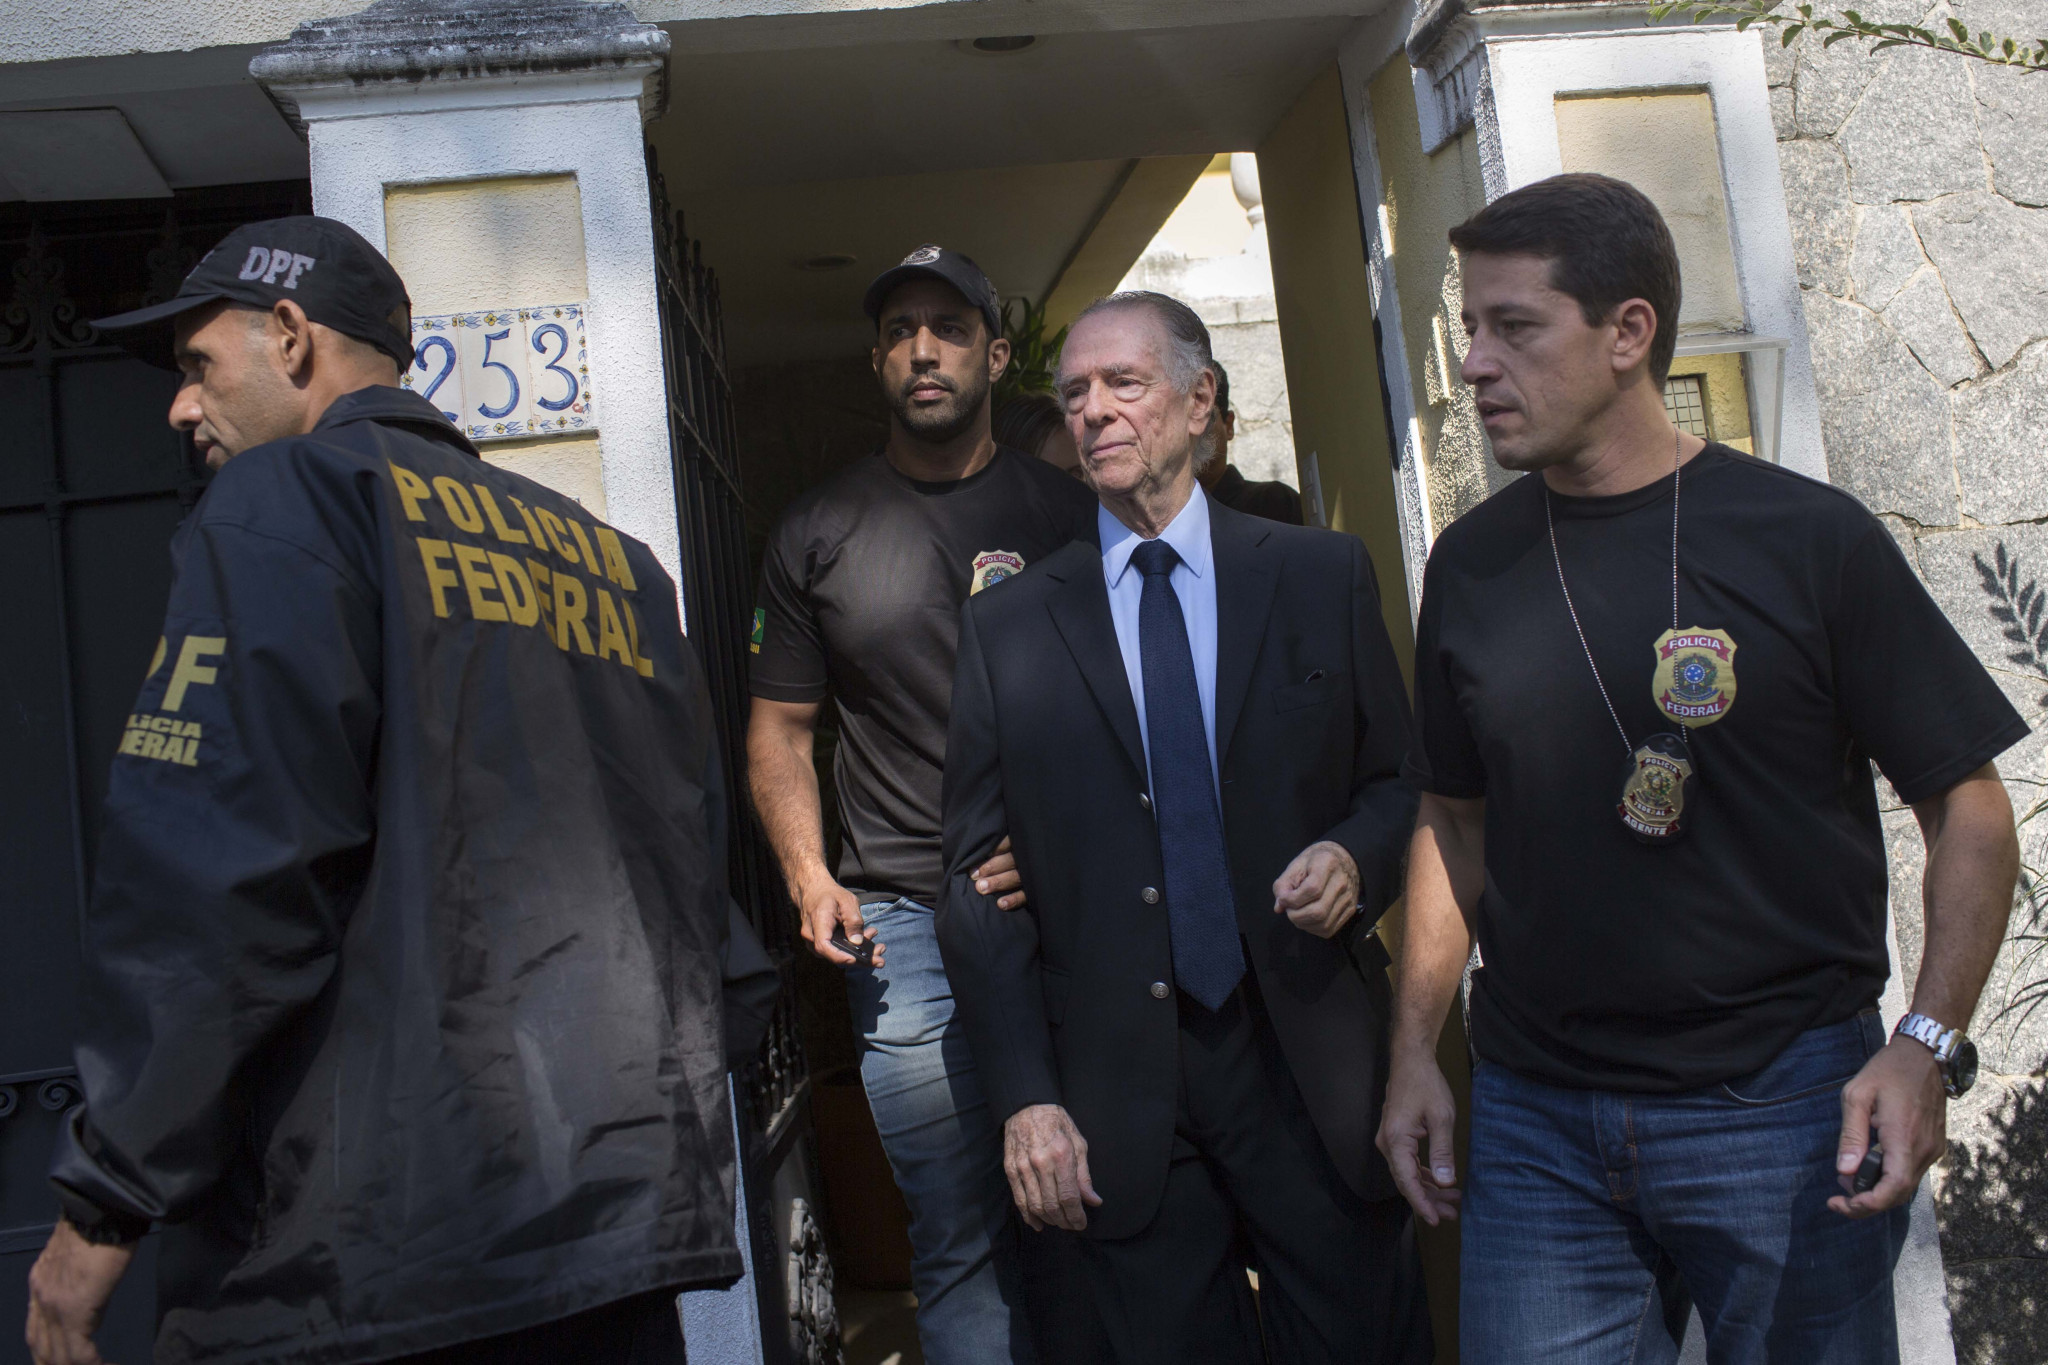 Nuzman officially charged by Brazilian prosecutors over allegations he bribed IOC members during Rio 2016 bid